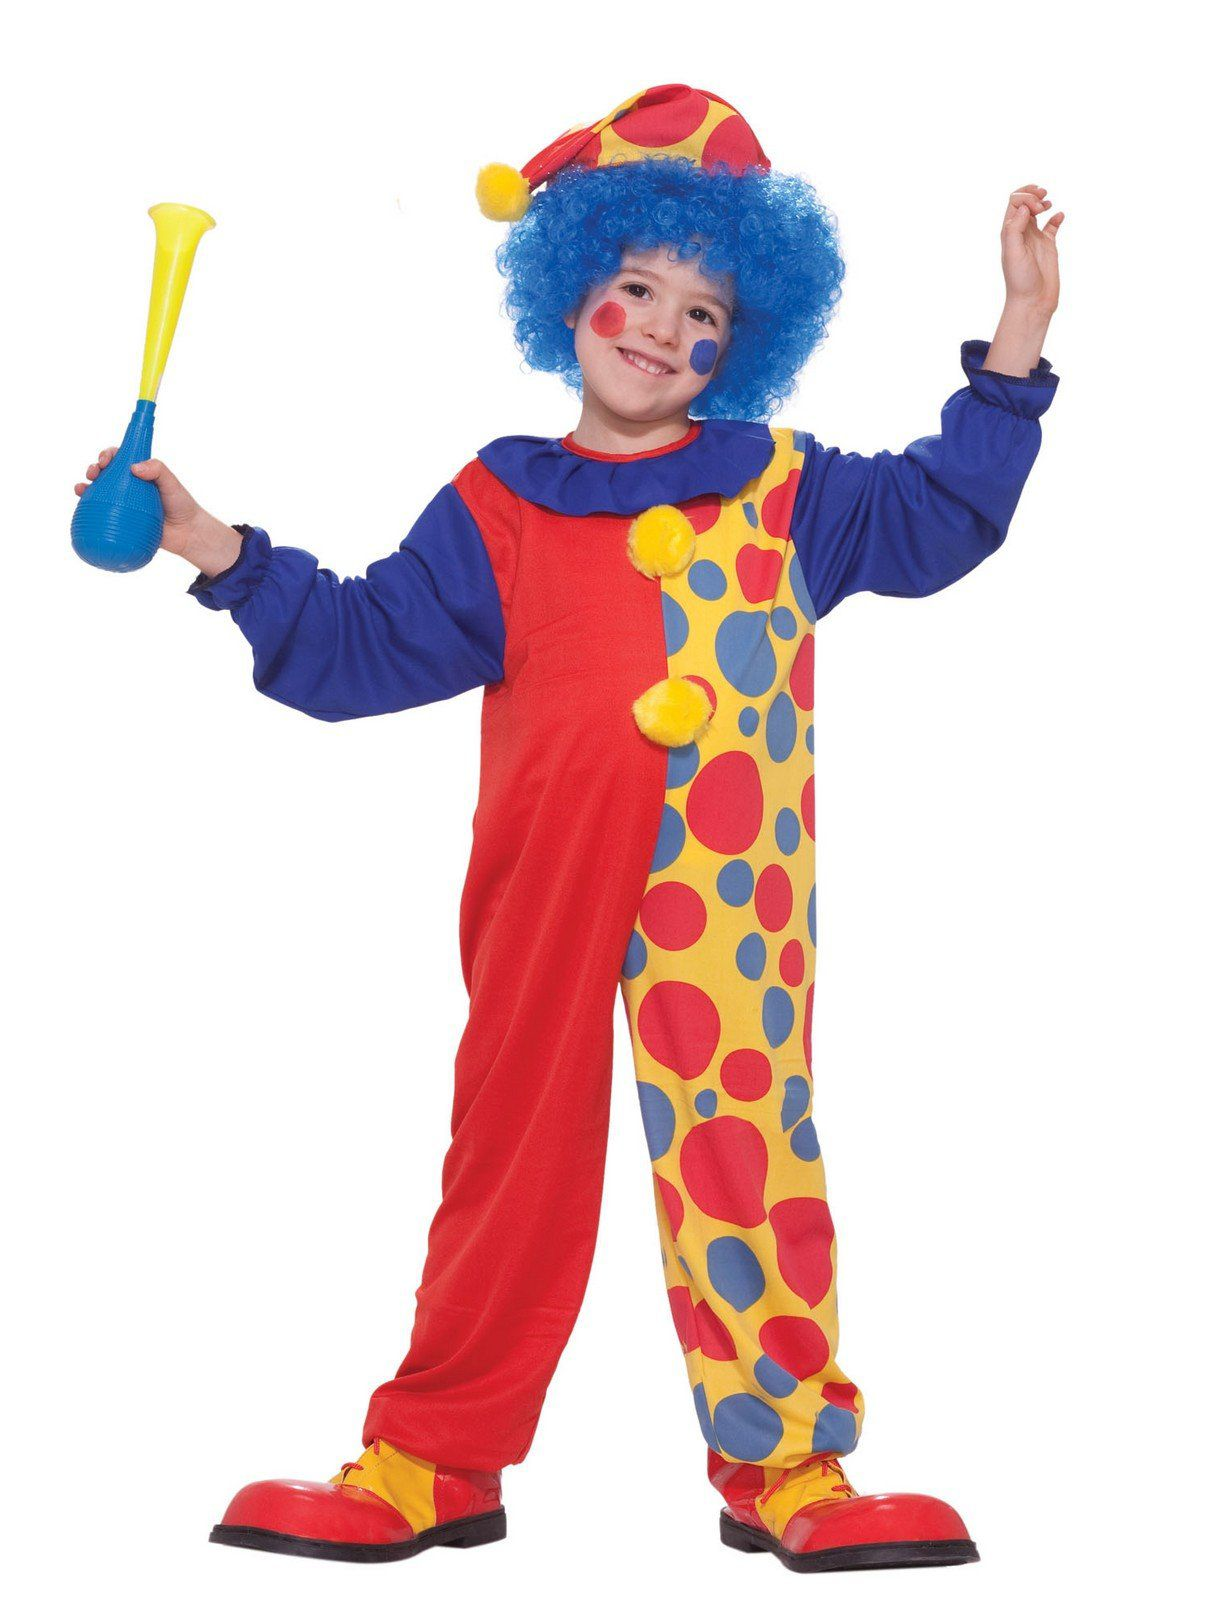 Clown Costume for Infants  sc 1 st  Wholesale Halloween Costumes & Clown Costume for Infants - Baby/Toddler Costumes for 2018 ...